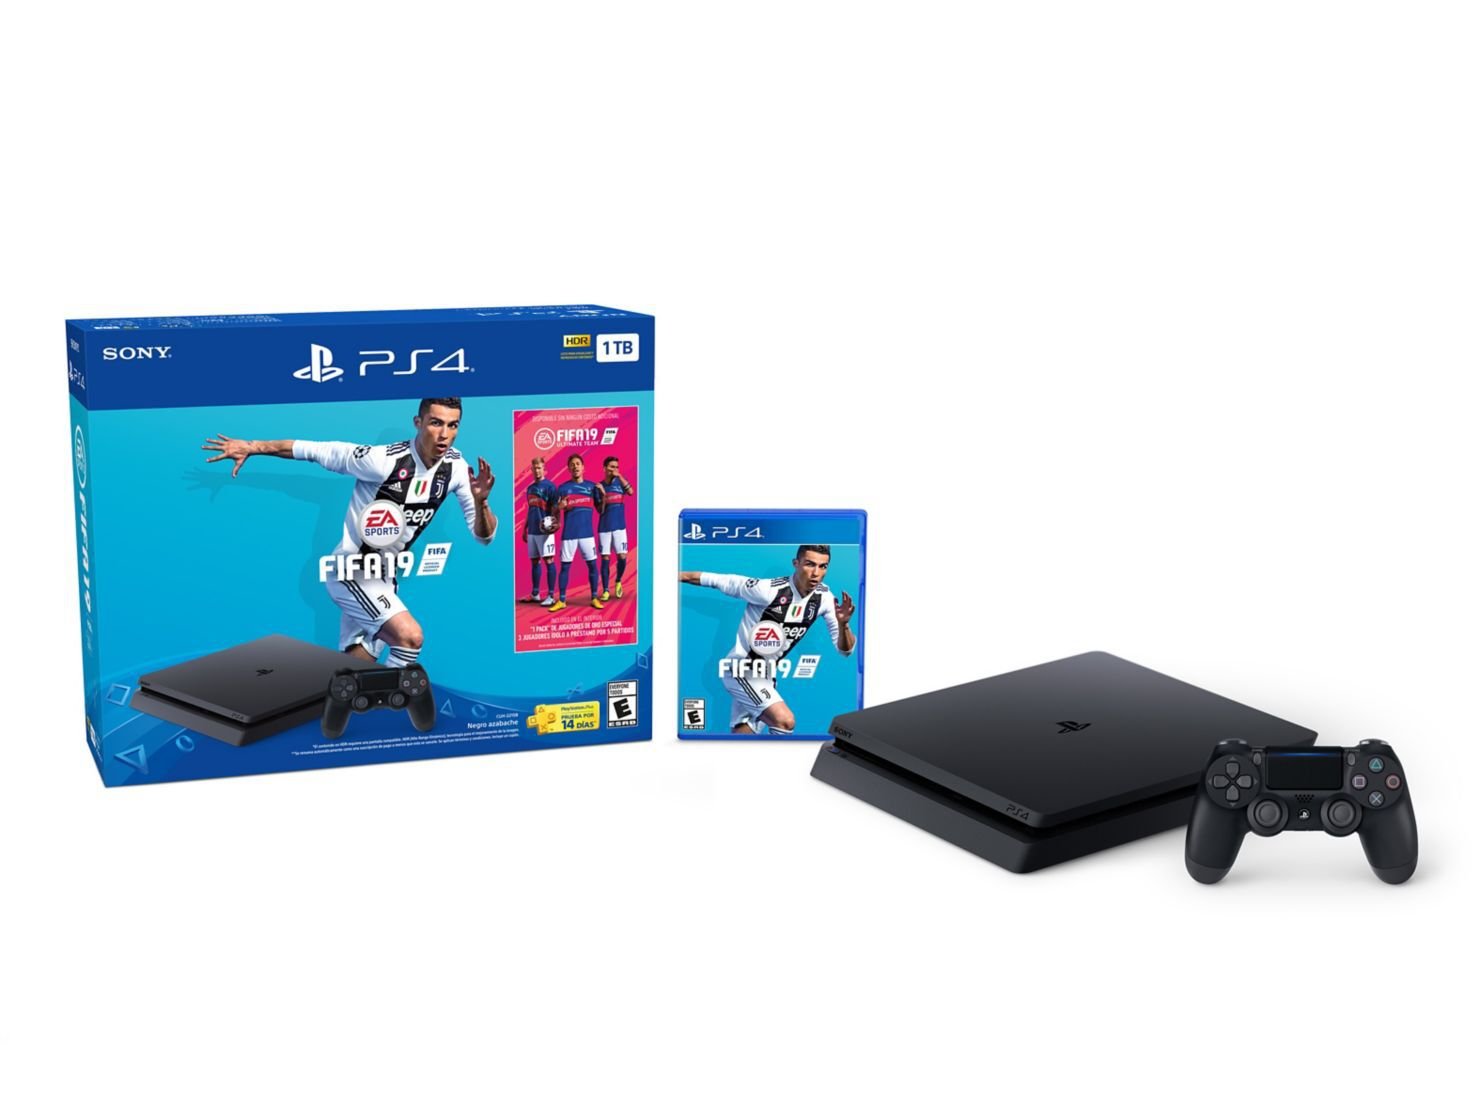 Consola Ps4 Slim 1tb Juego Fifa 19 Juegos Ps4 Y Vr Paris